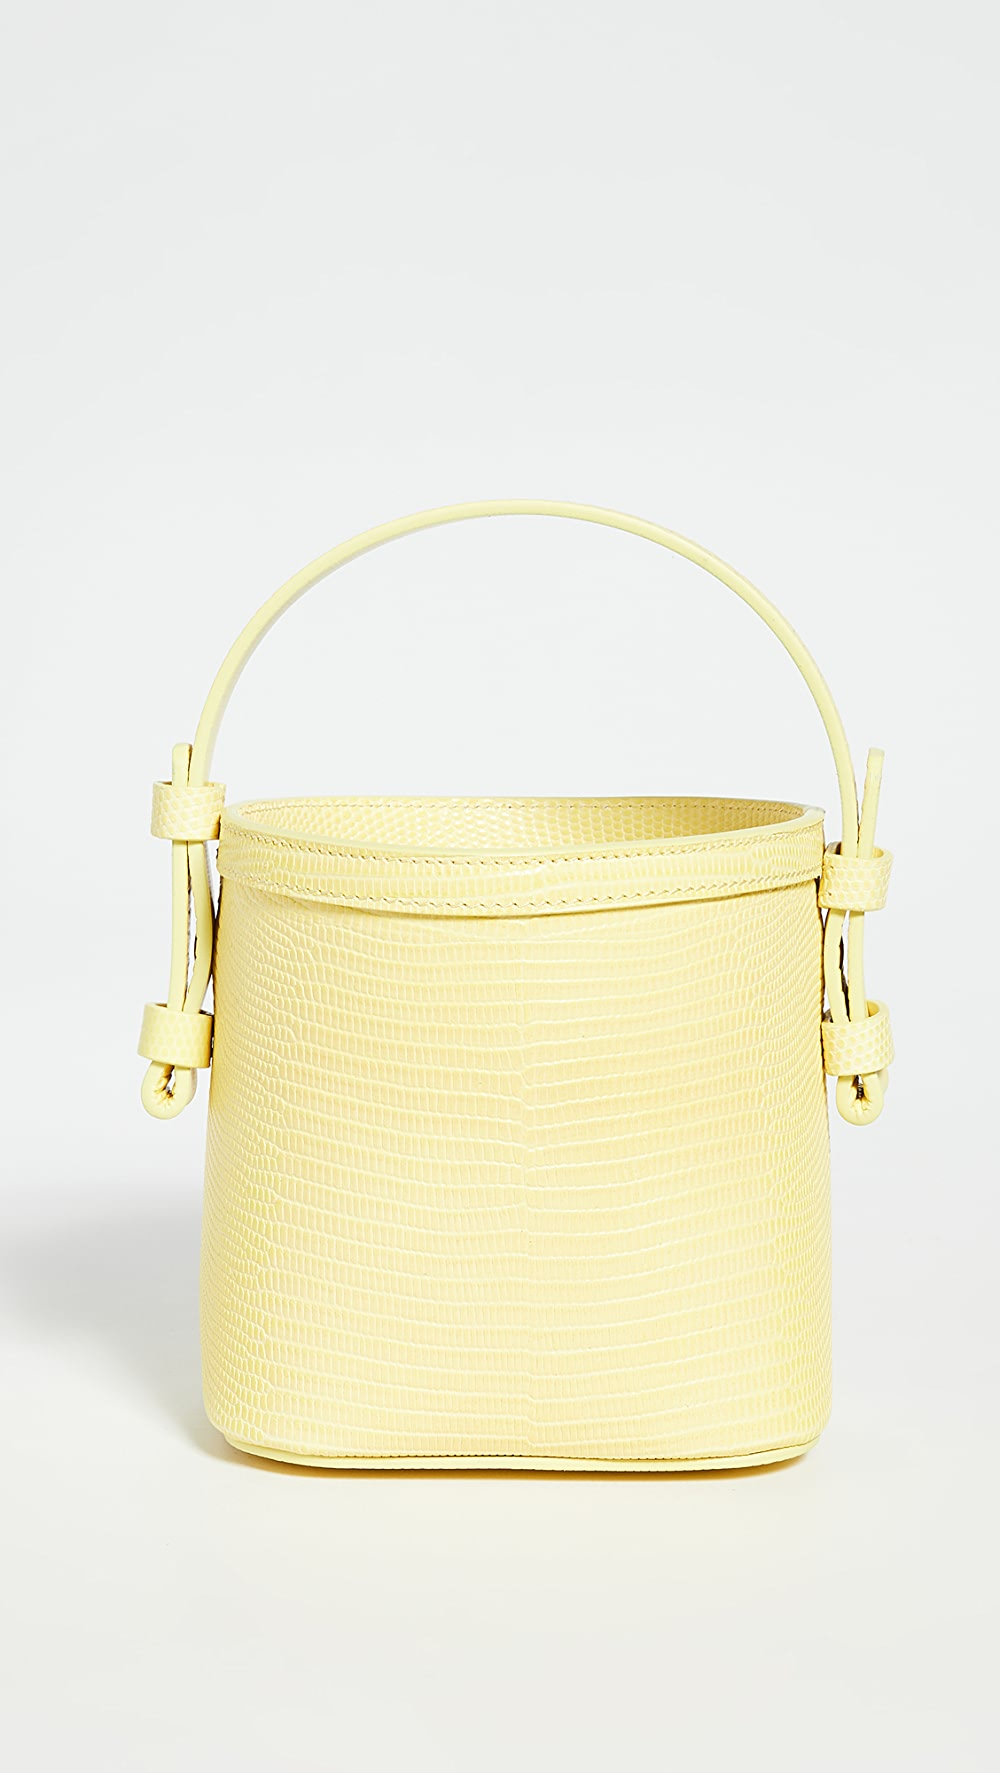 Objective Nico Giani - Adenia Mini Bucket Bag Fast Color